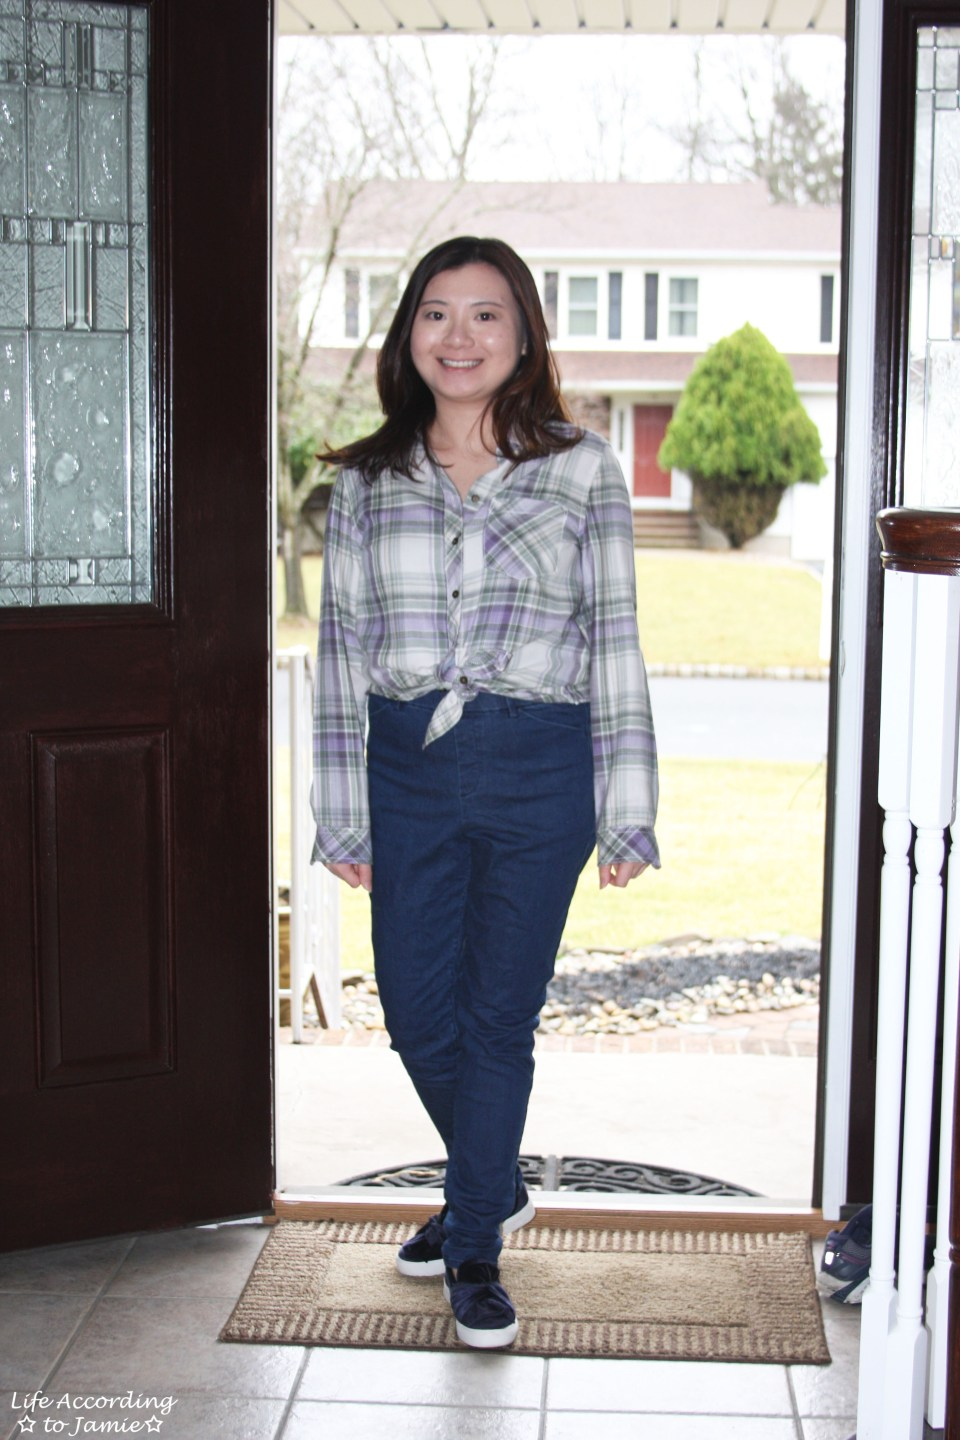 Tied Plaid Top + High Waisted Jeans 3